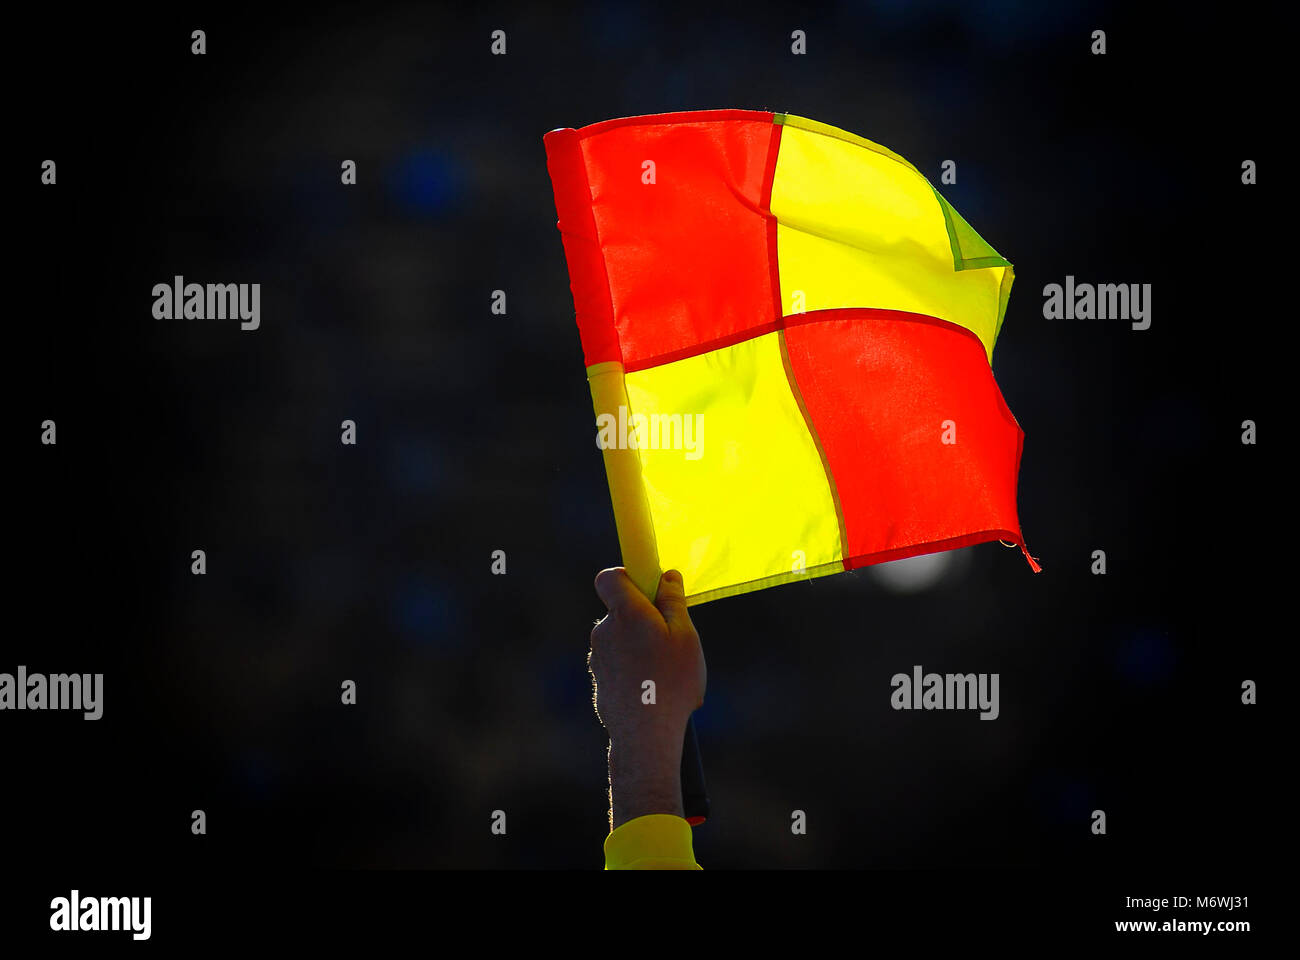 football foul flag on the background of the stands during soccer match - Stock Image